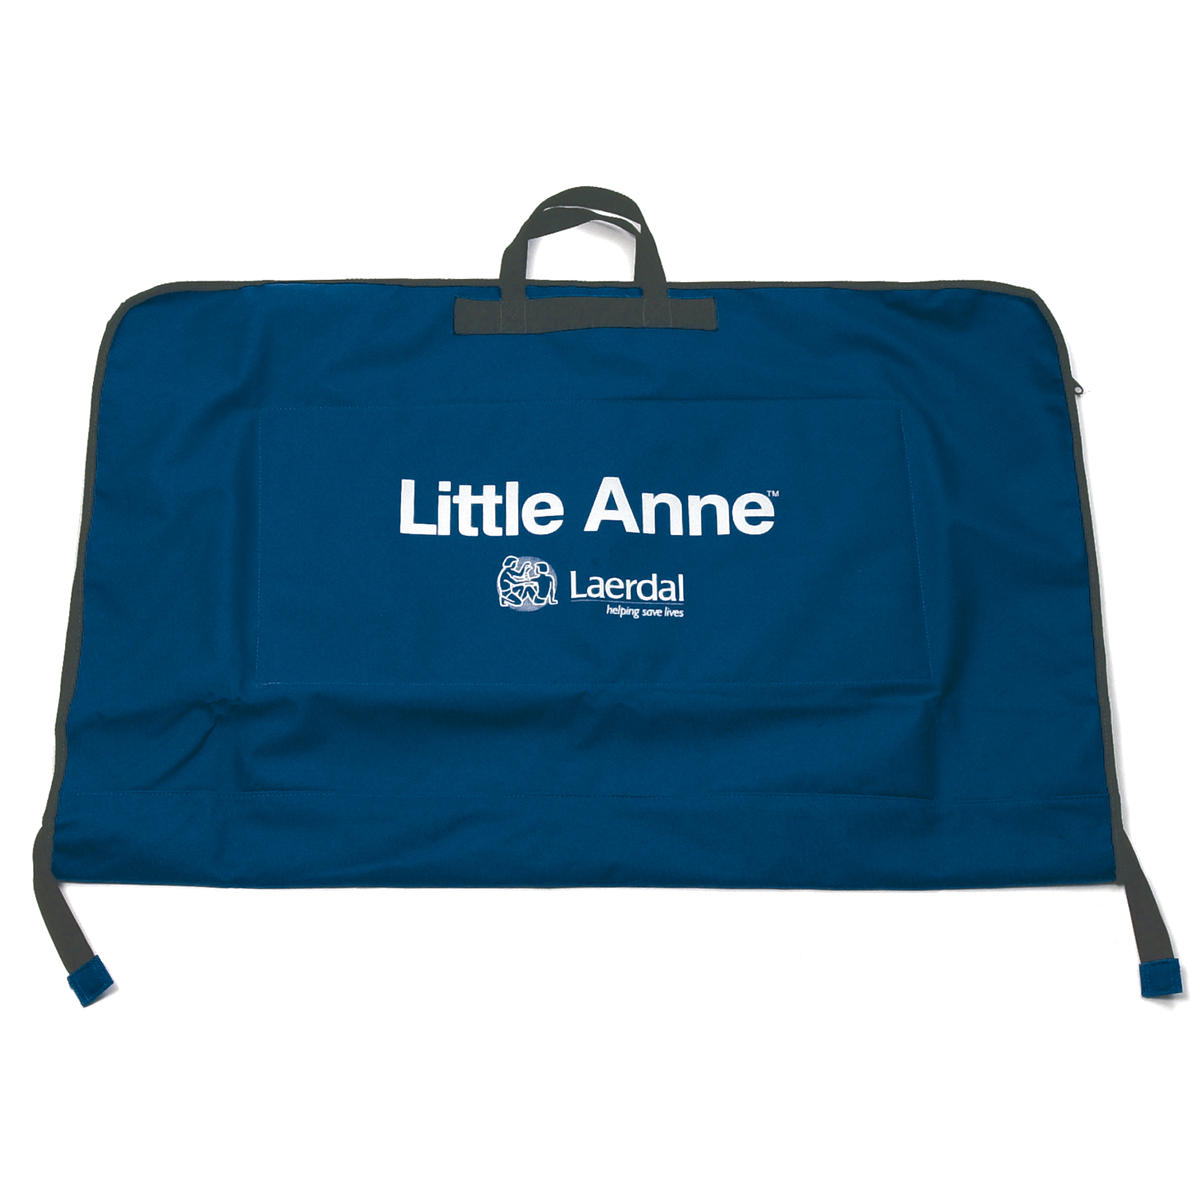 Laerdal Little Anne™ Soft Pack